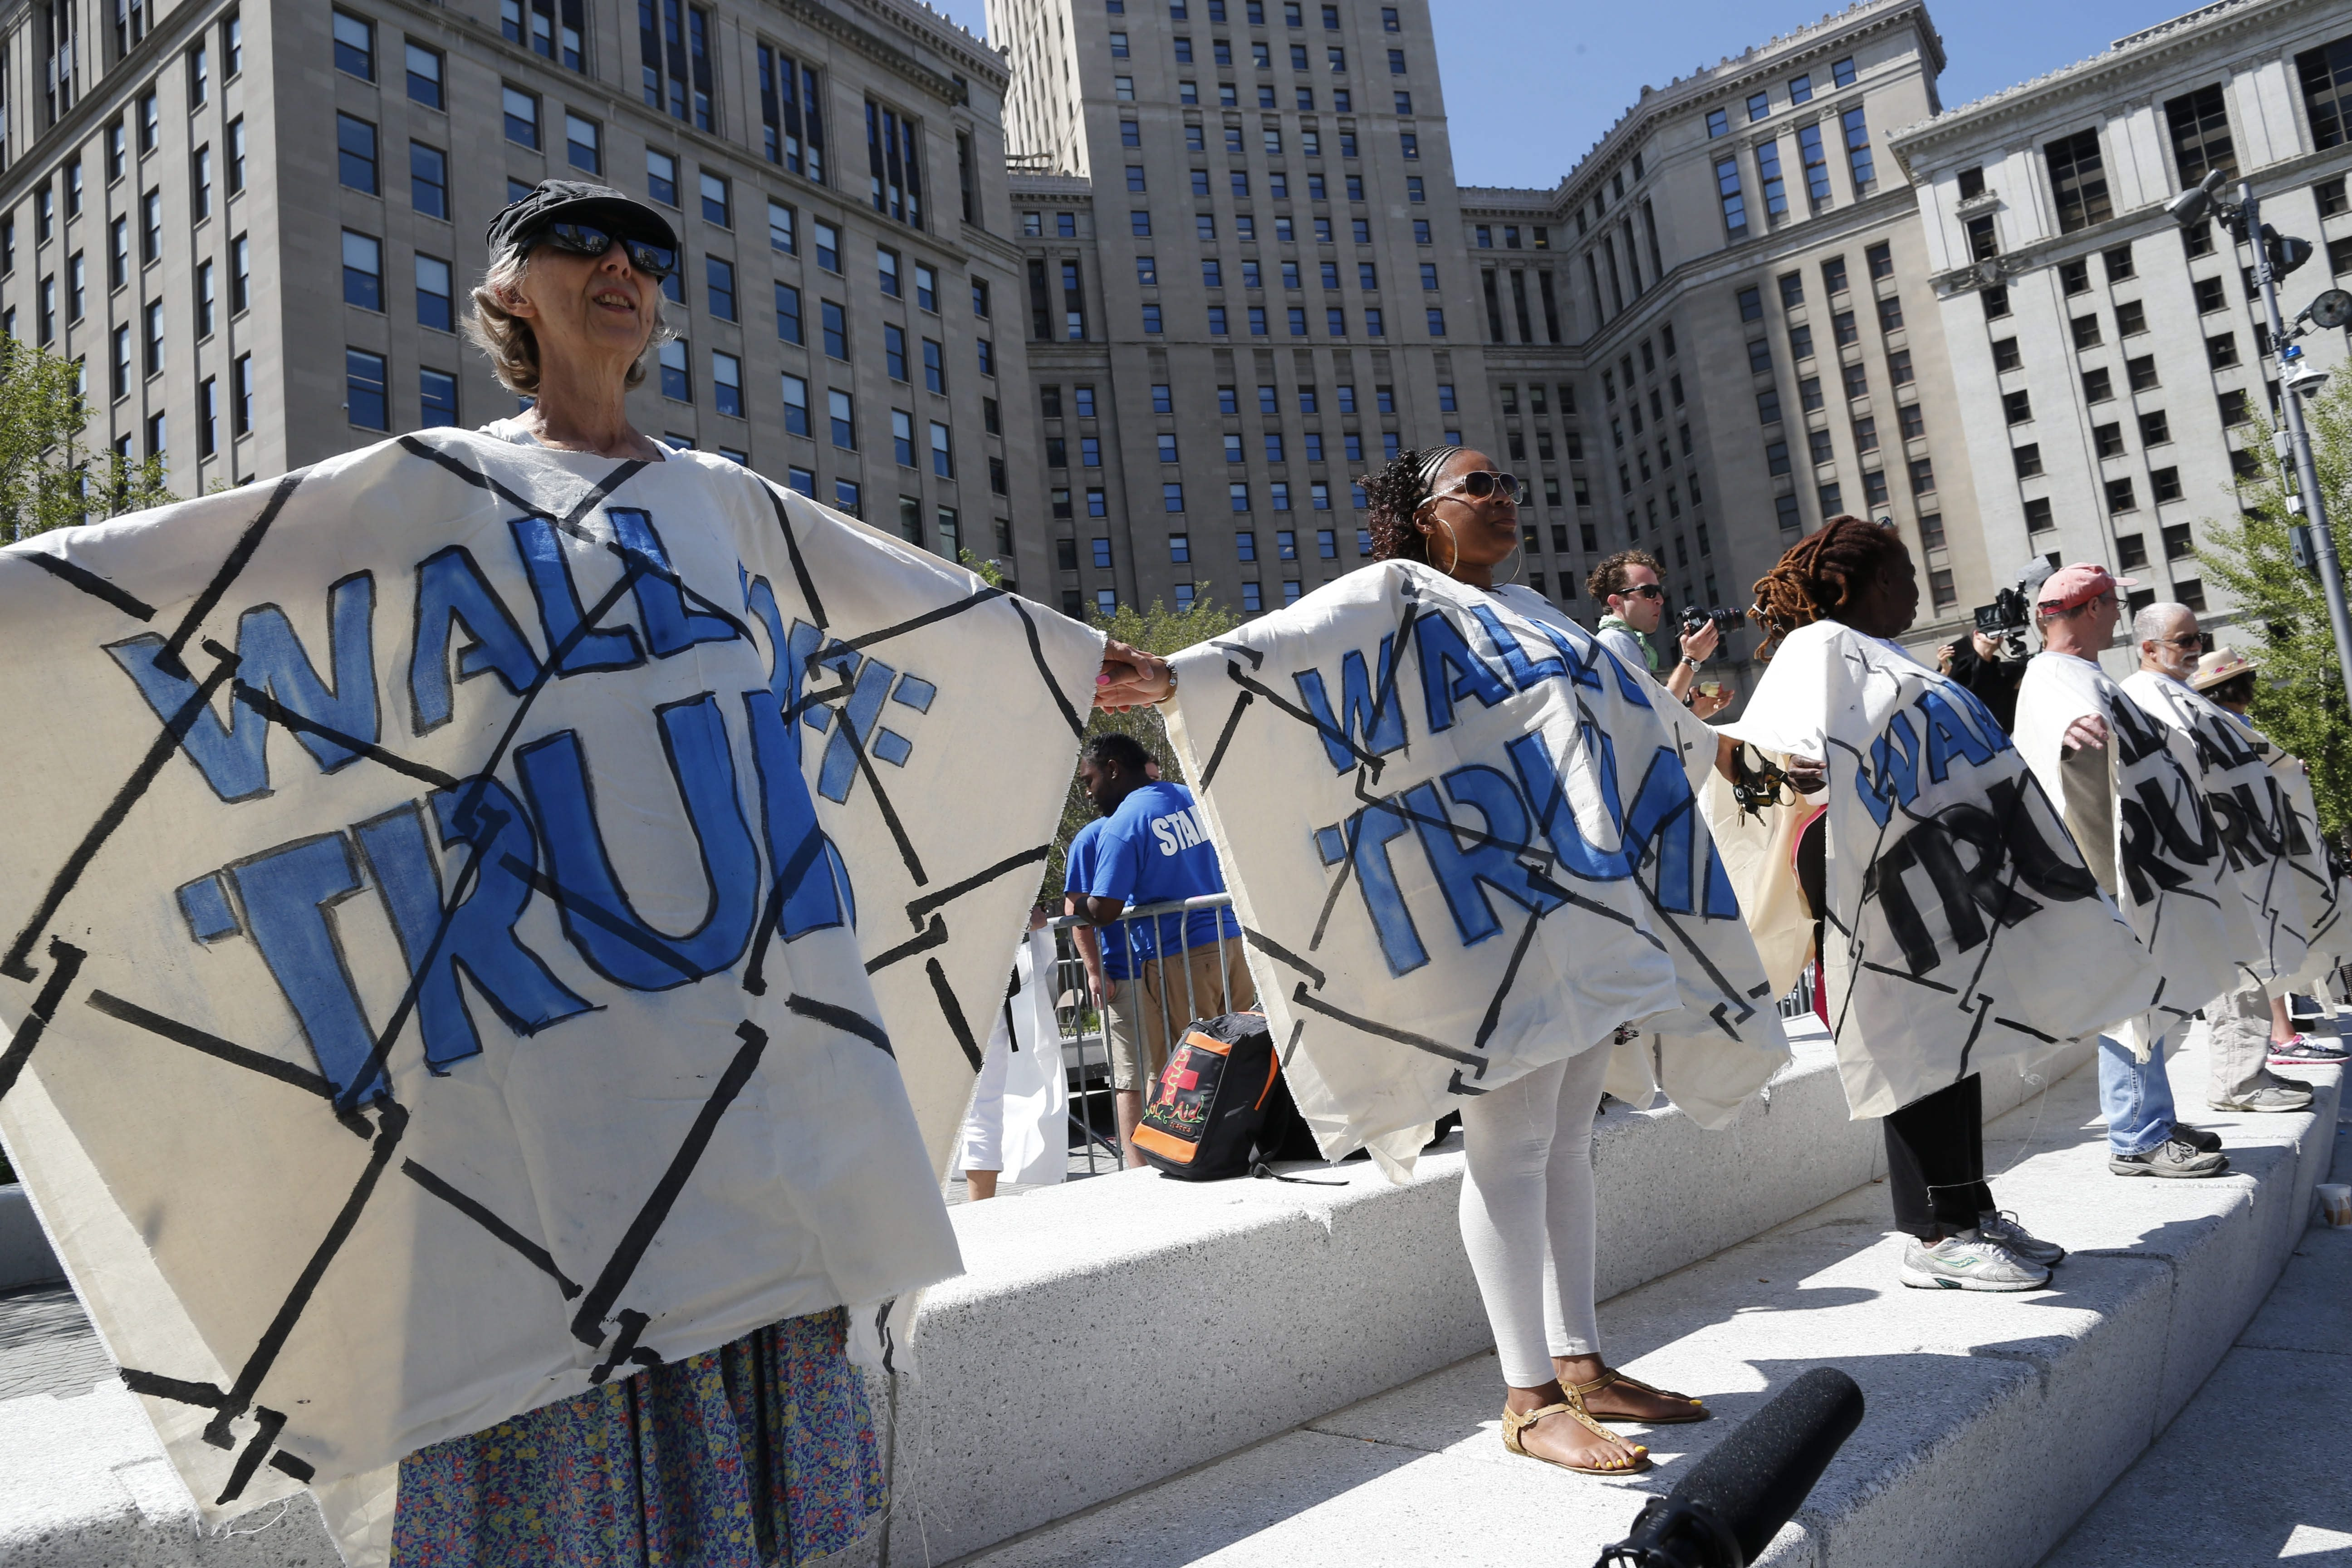 """Protesters wear faux-brick walls over their fronts and backs during the """"Wall Off Trump"""" protest in Public Square."""